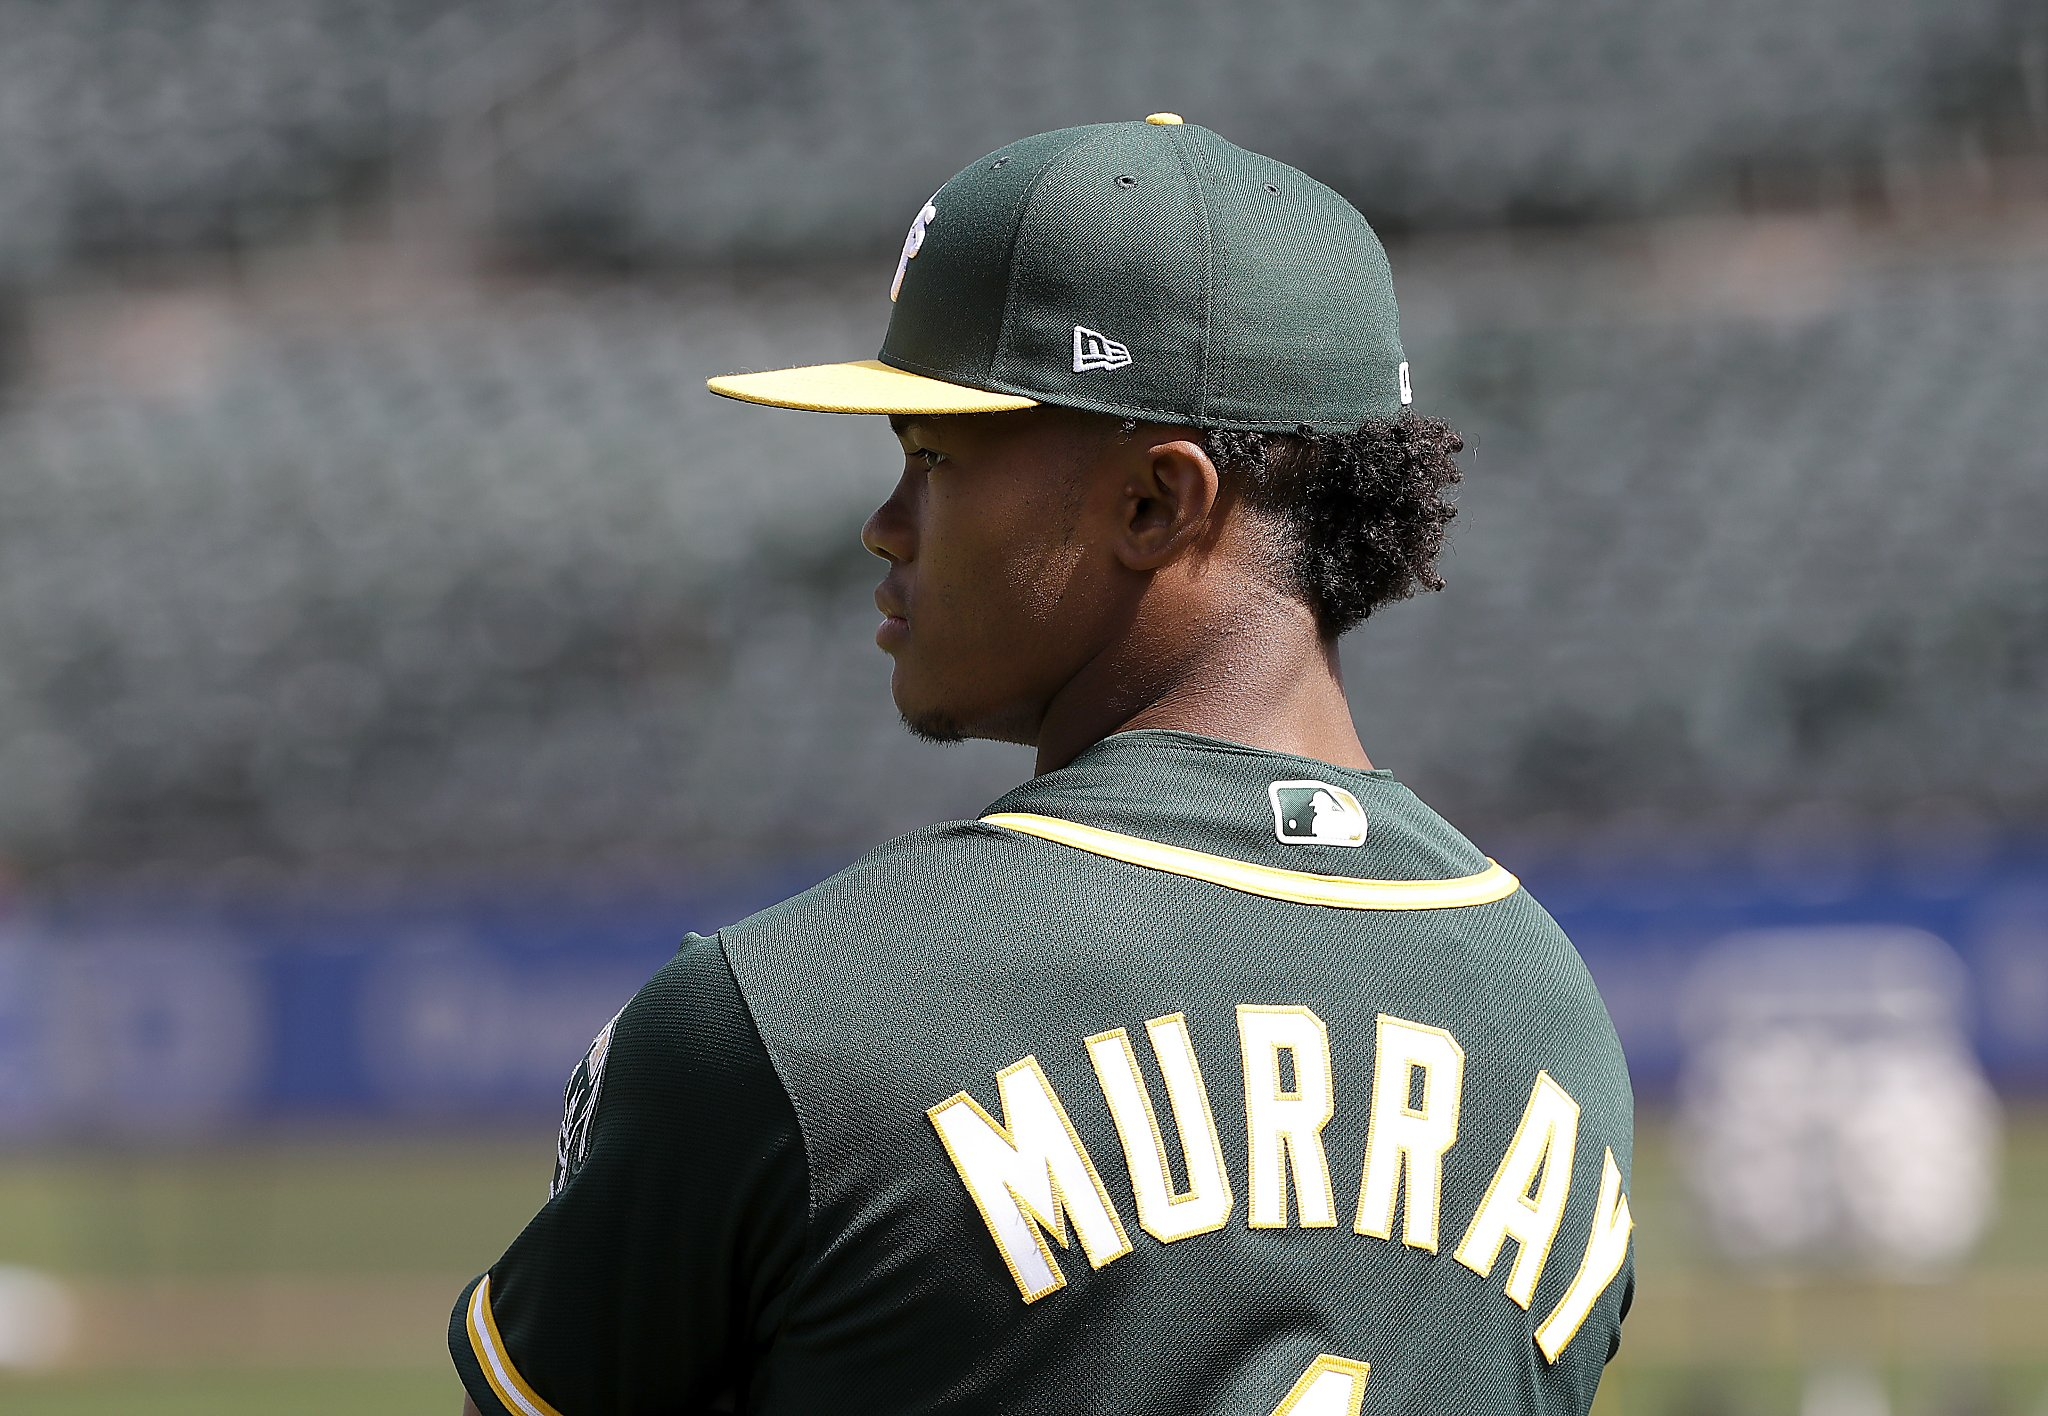 Awaiting decision by Kyler Murray, A's draftee and Heisman